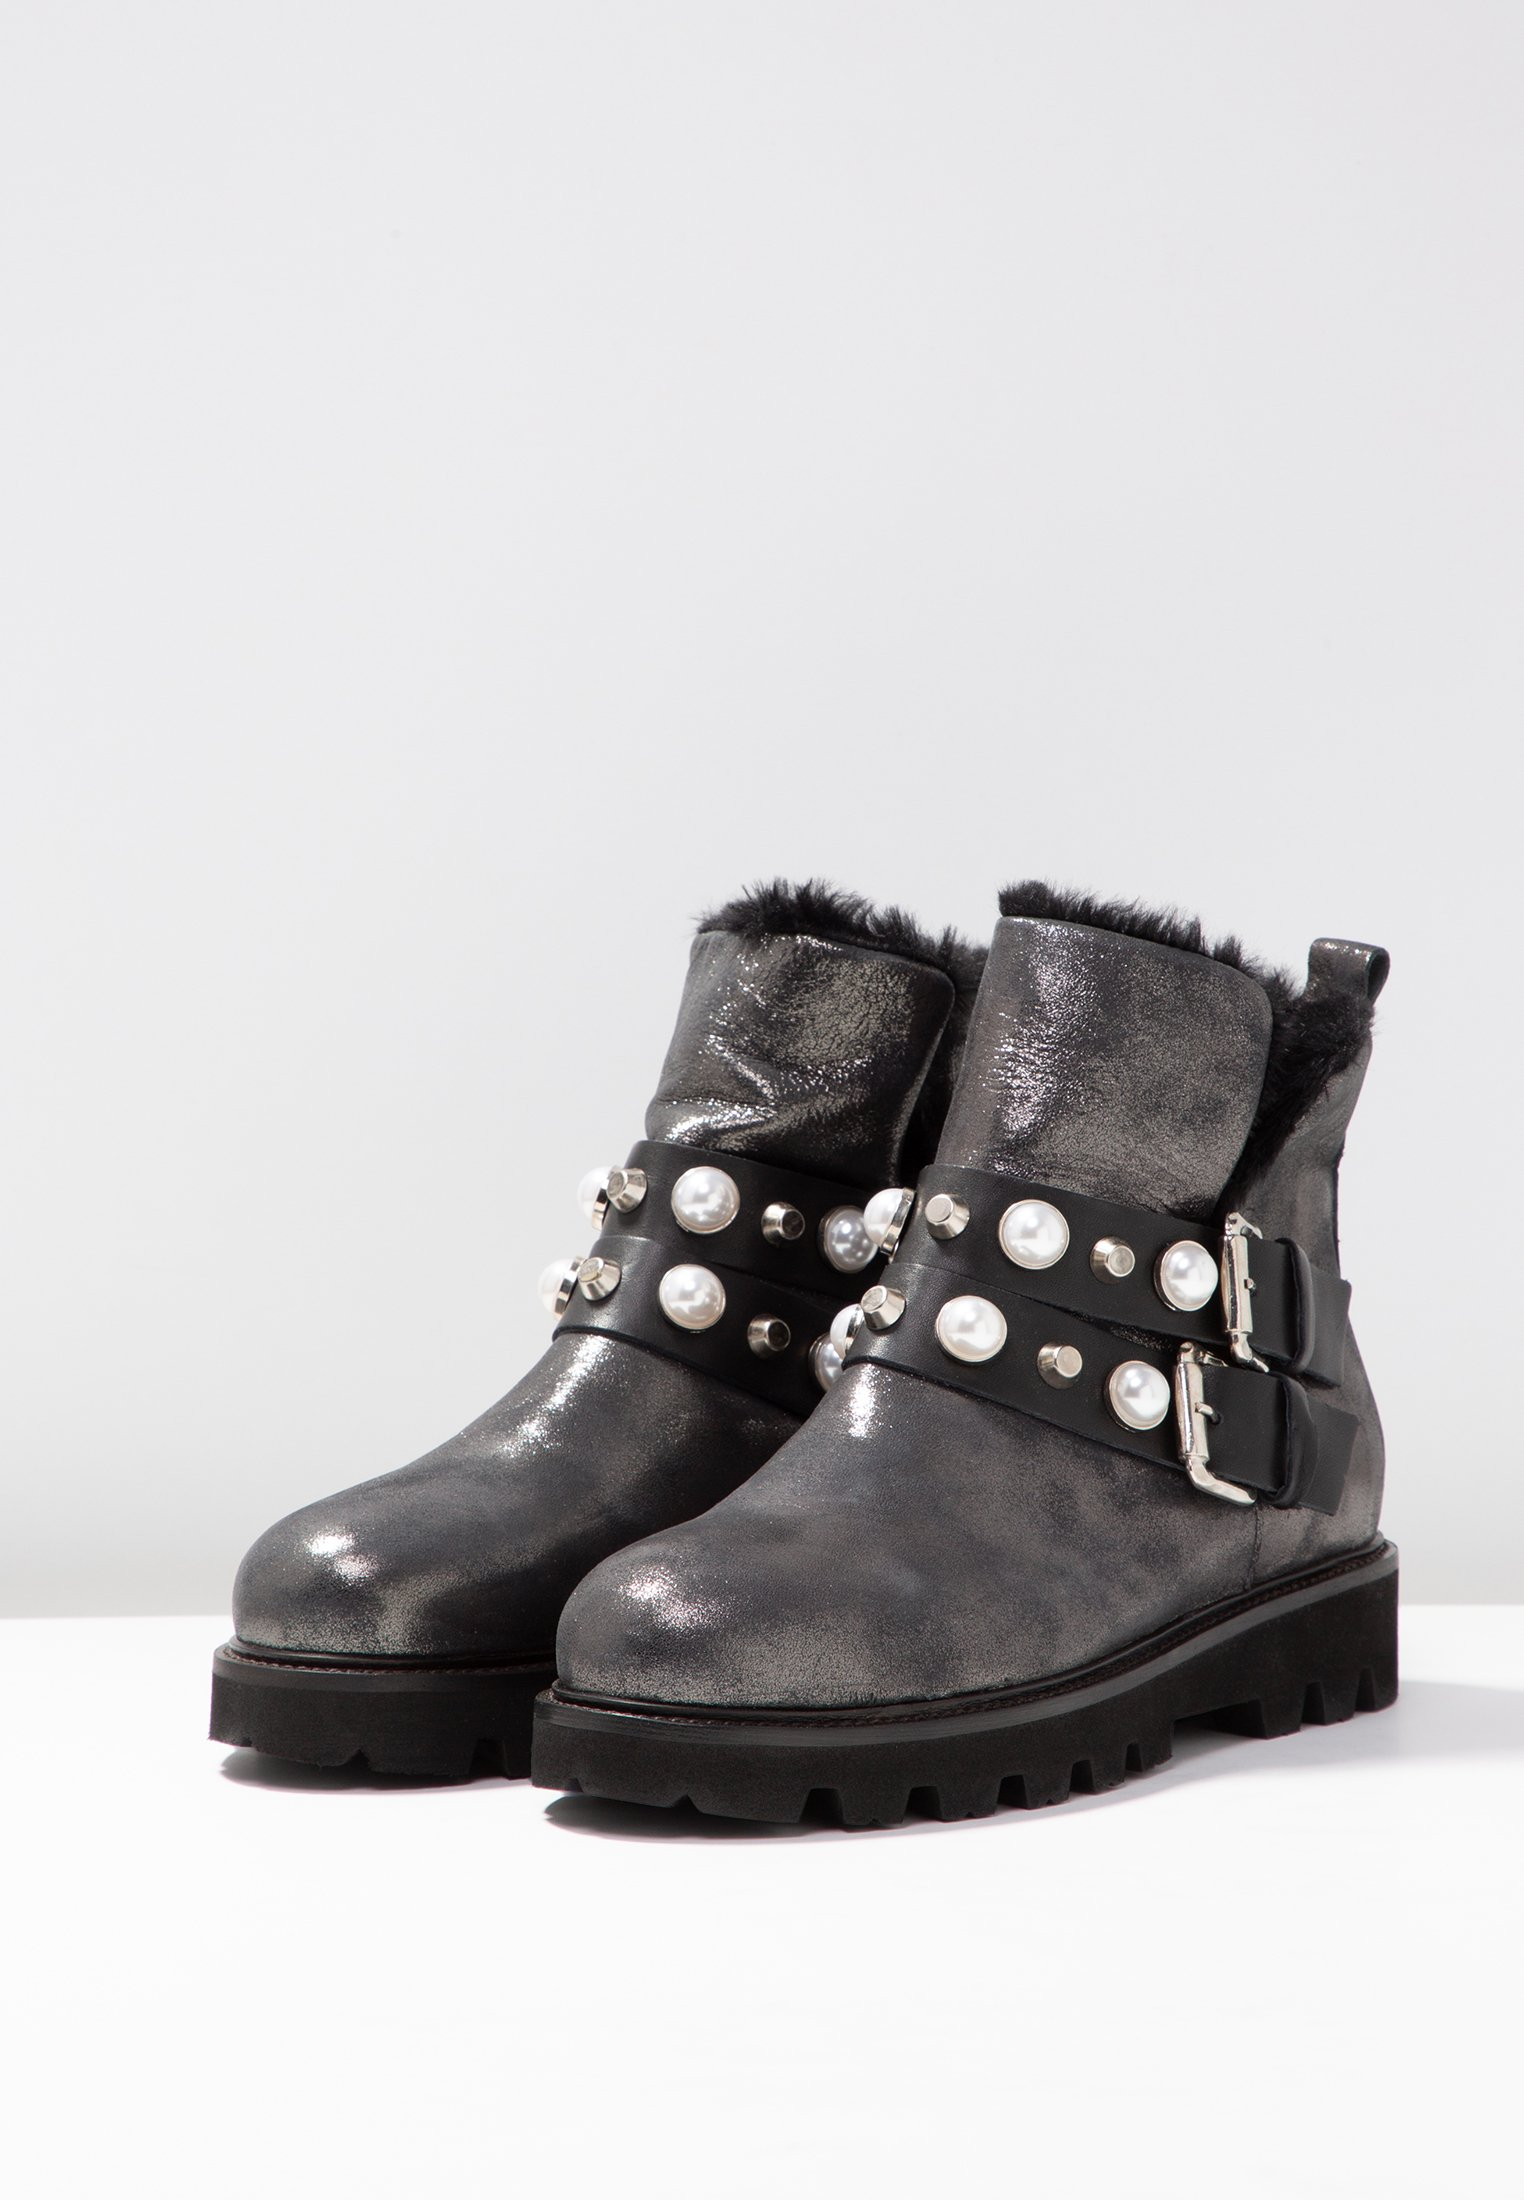 London Out PlateauGlam Way À Bottines fucile Yfg76yb